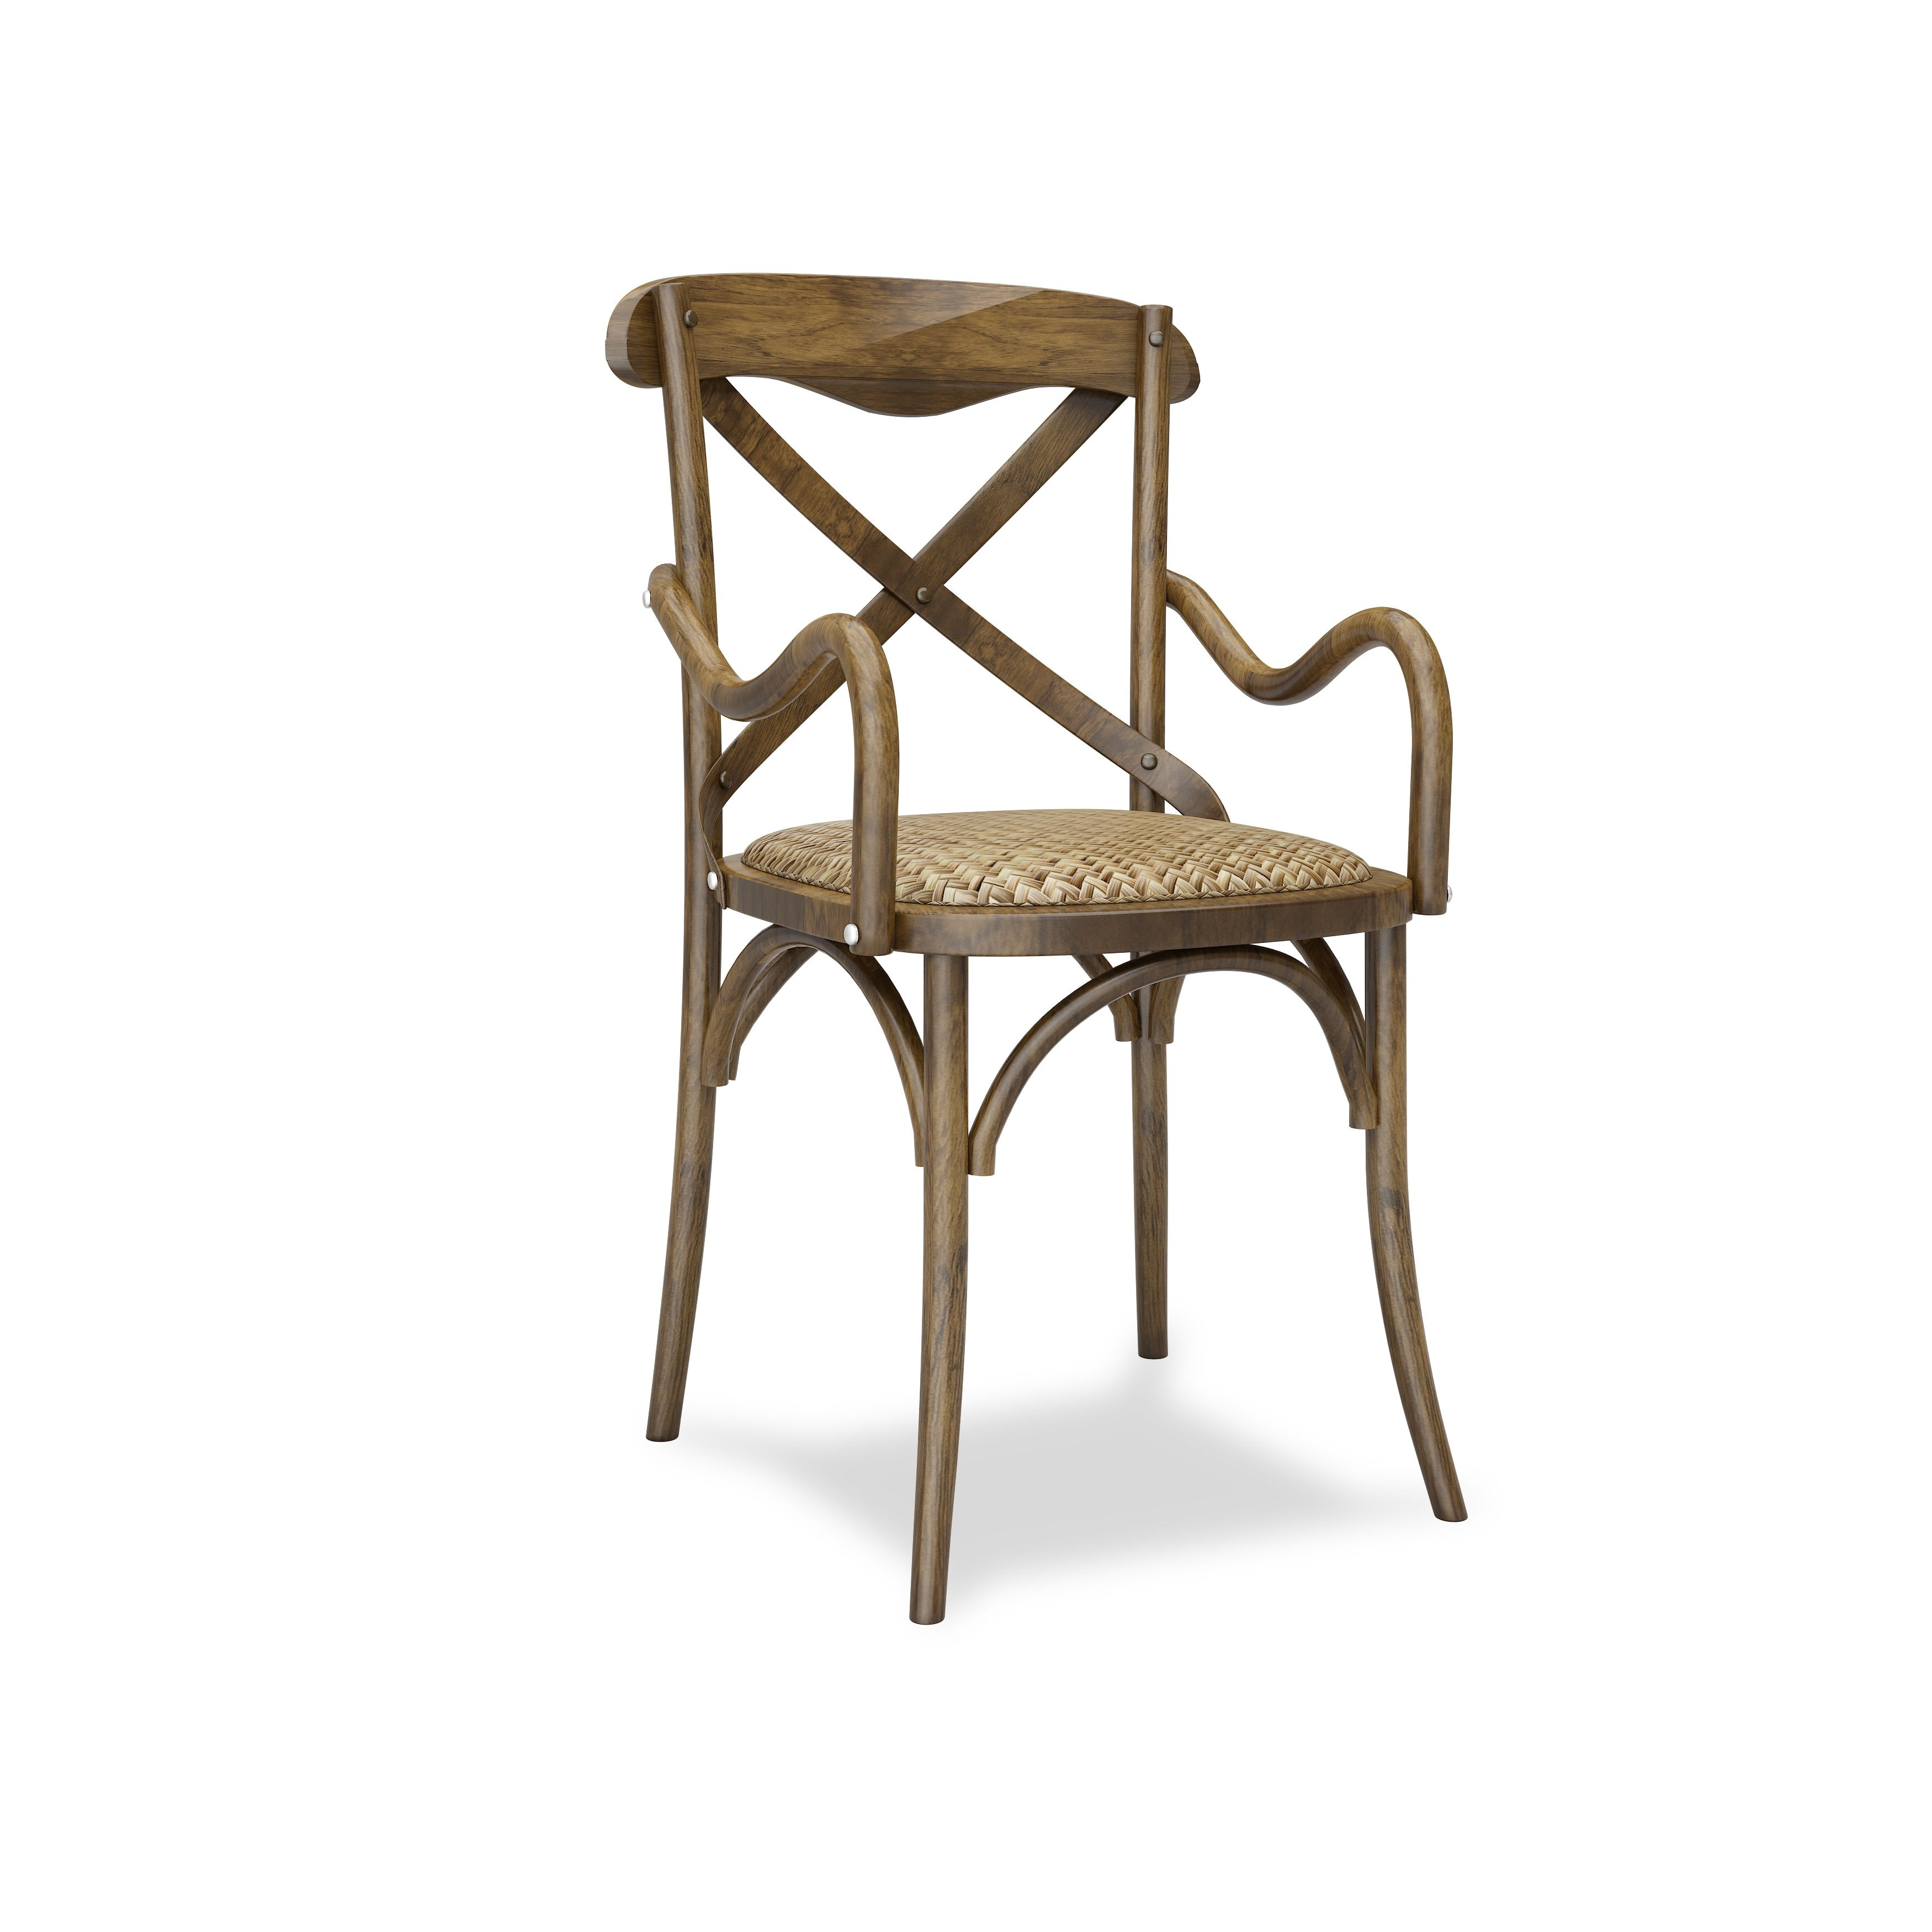 Stupendous The Gray Barn Trails End Elm And Rattan Dining Chair Off Unemploymentrelief Wooden Chair Designs For Living Room Unemploymentrelieforg